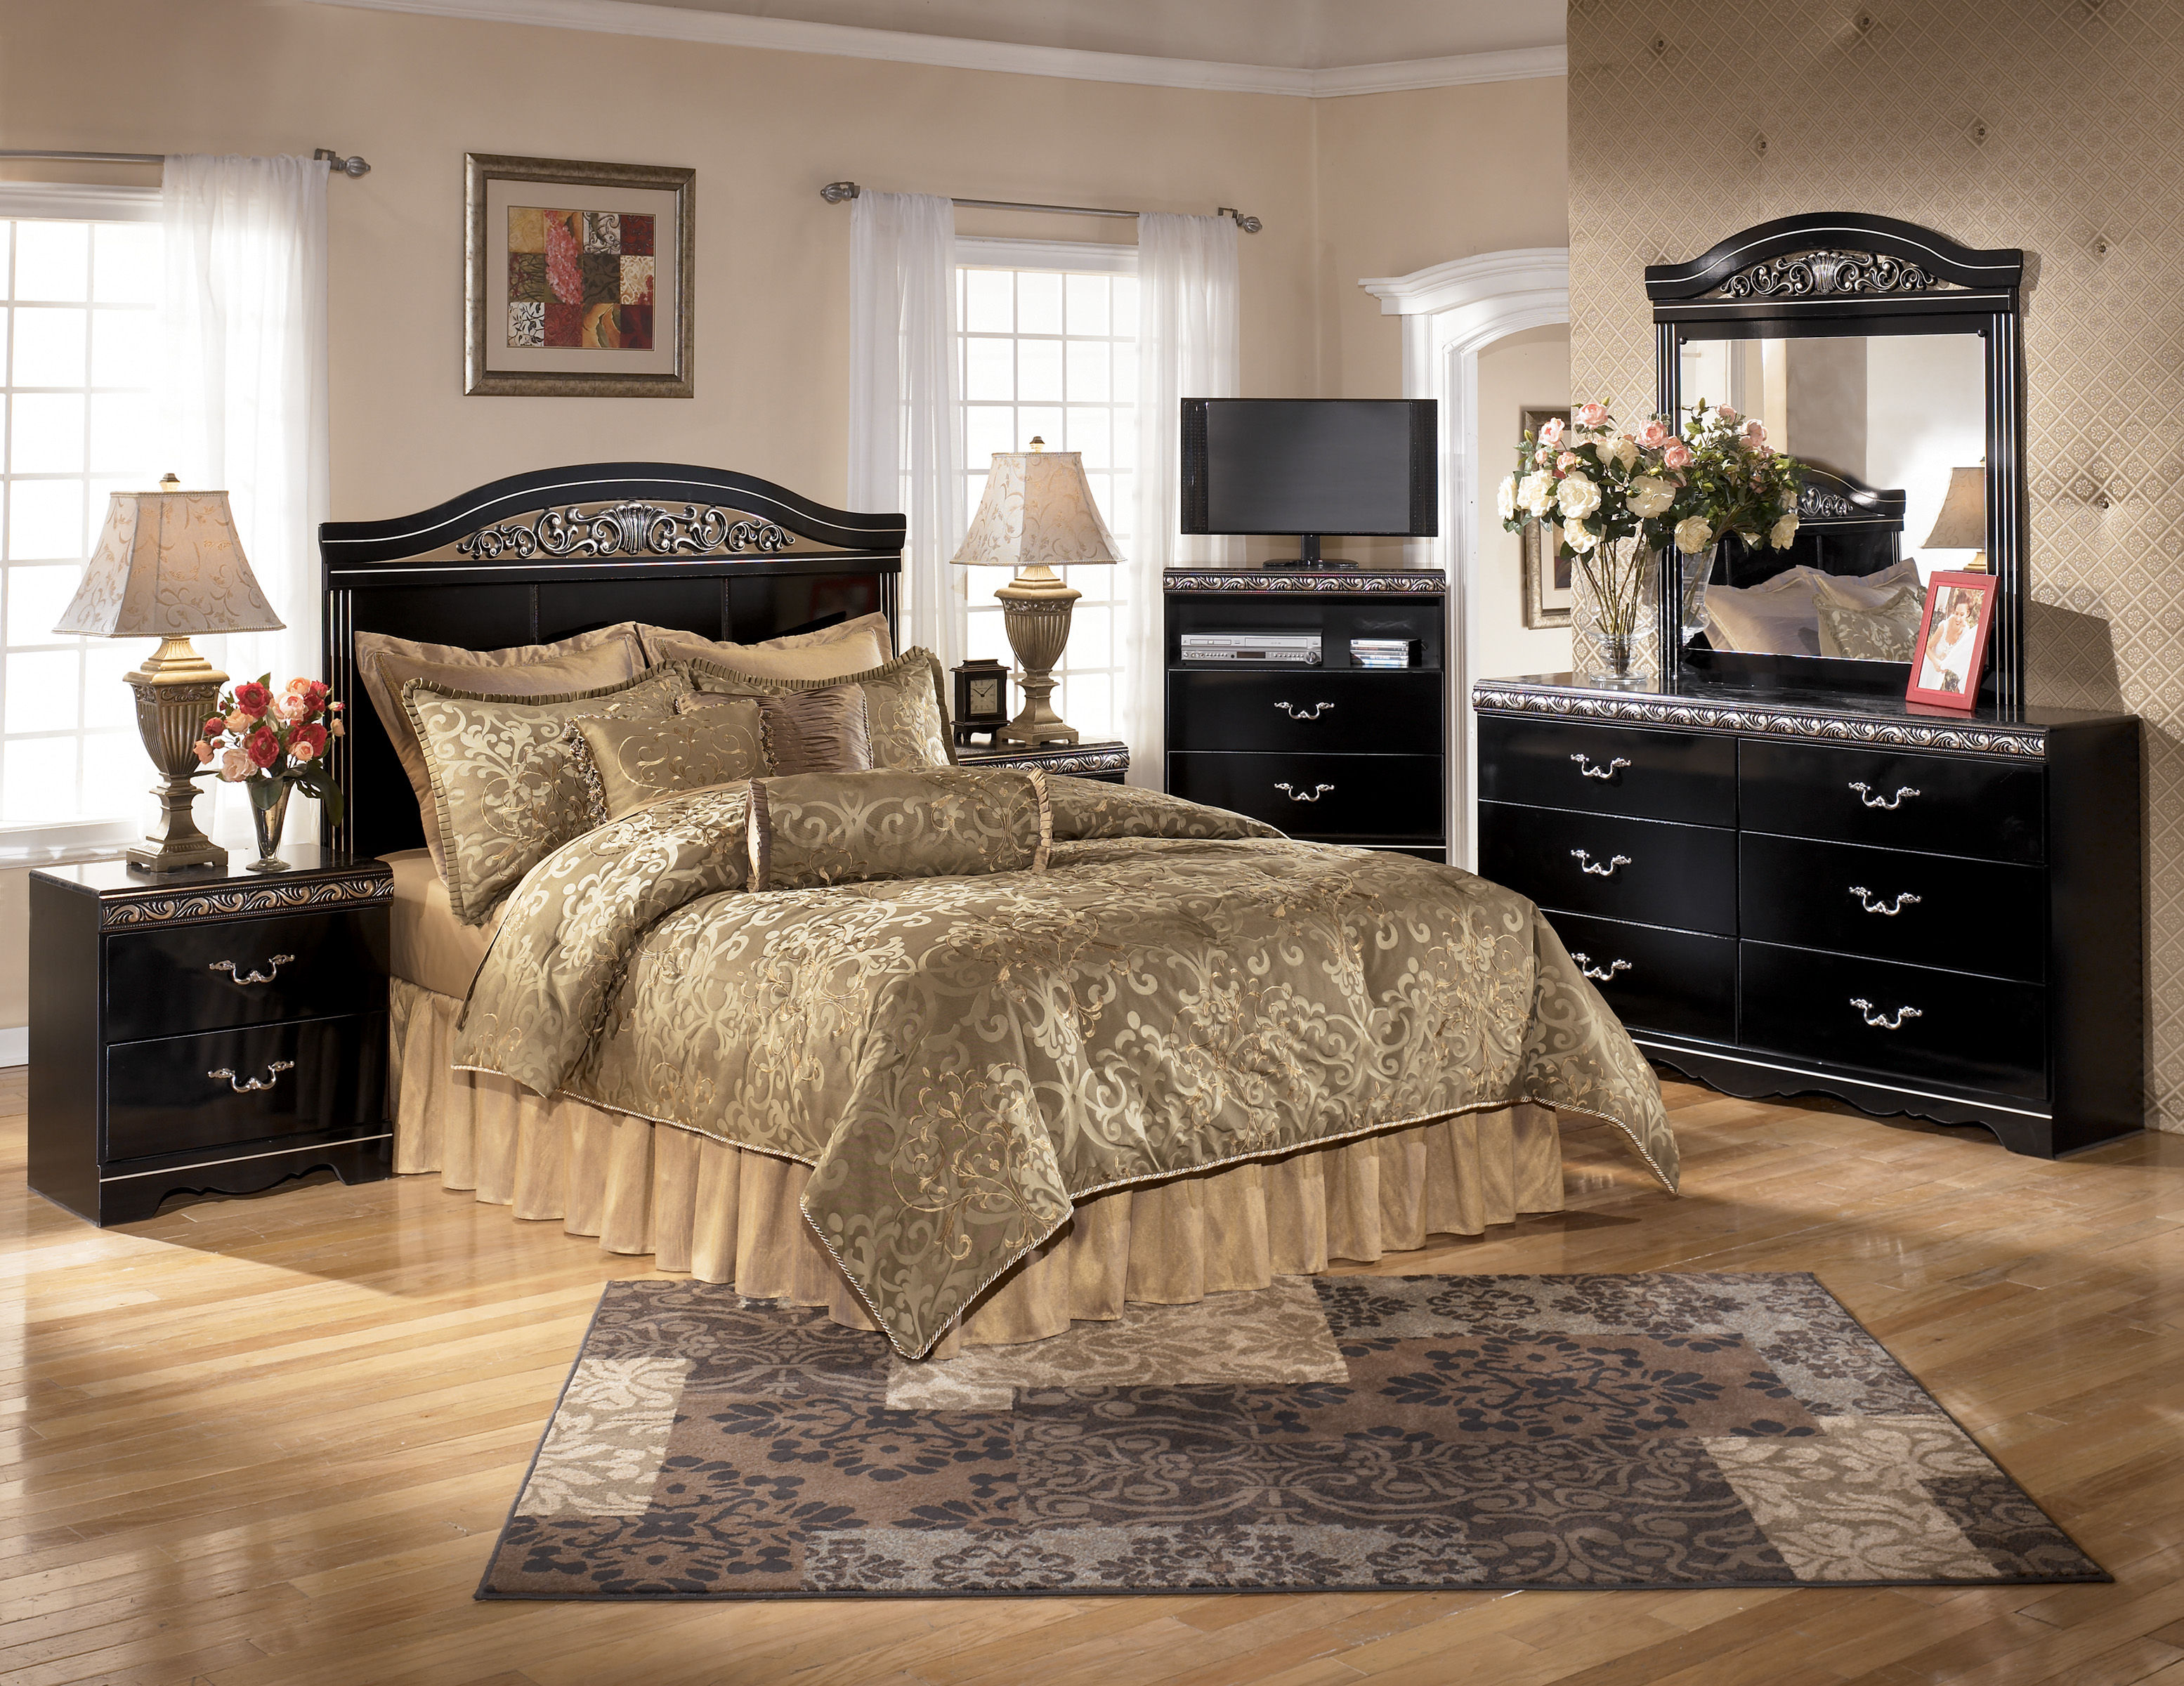 Ashley furniture constellations black 2pc bedroom set with queen full headboard the classy home for Ashley furniture black bedroom set